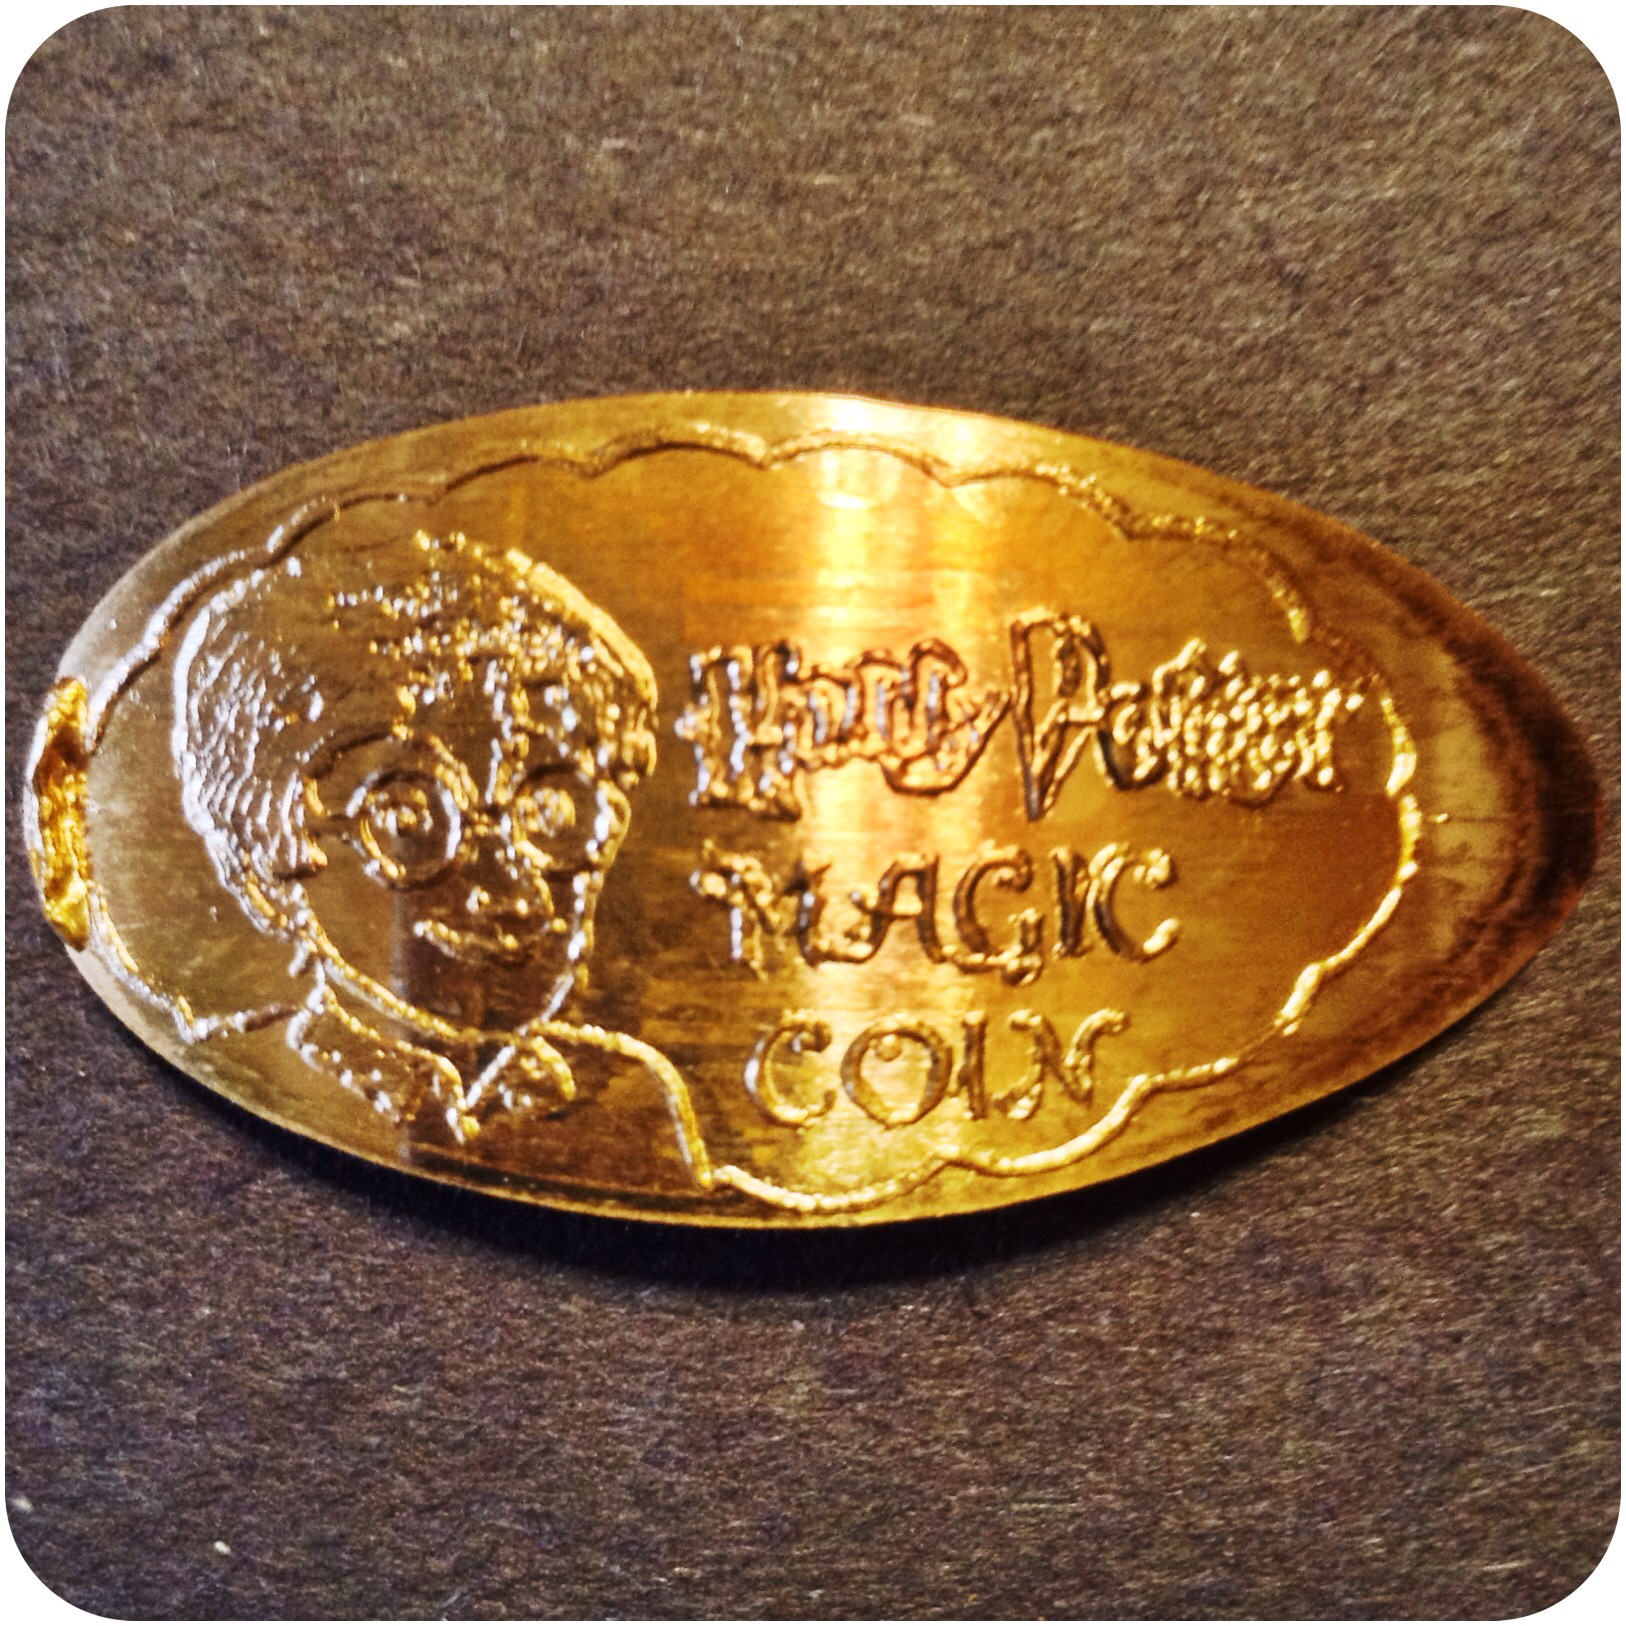 Harry Potter Magic Coin, Elongated Copper Penny Engraved by James Kilcoyne in KY